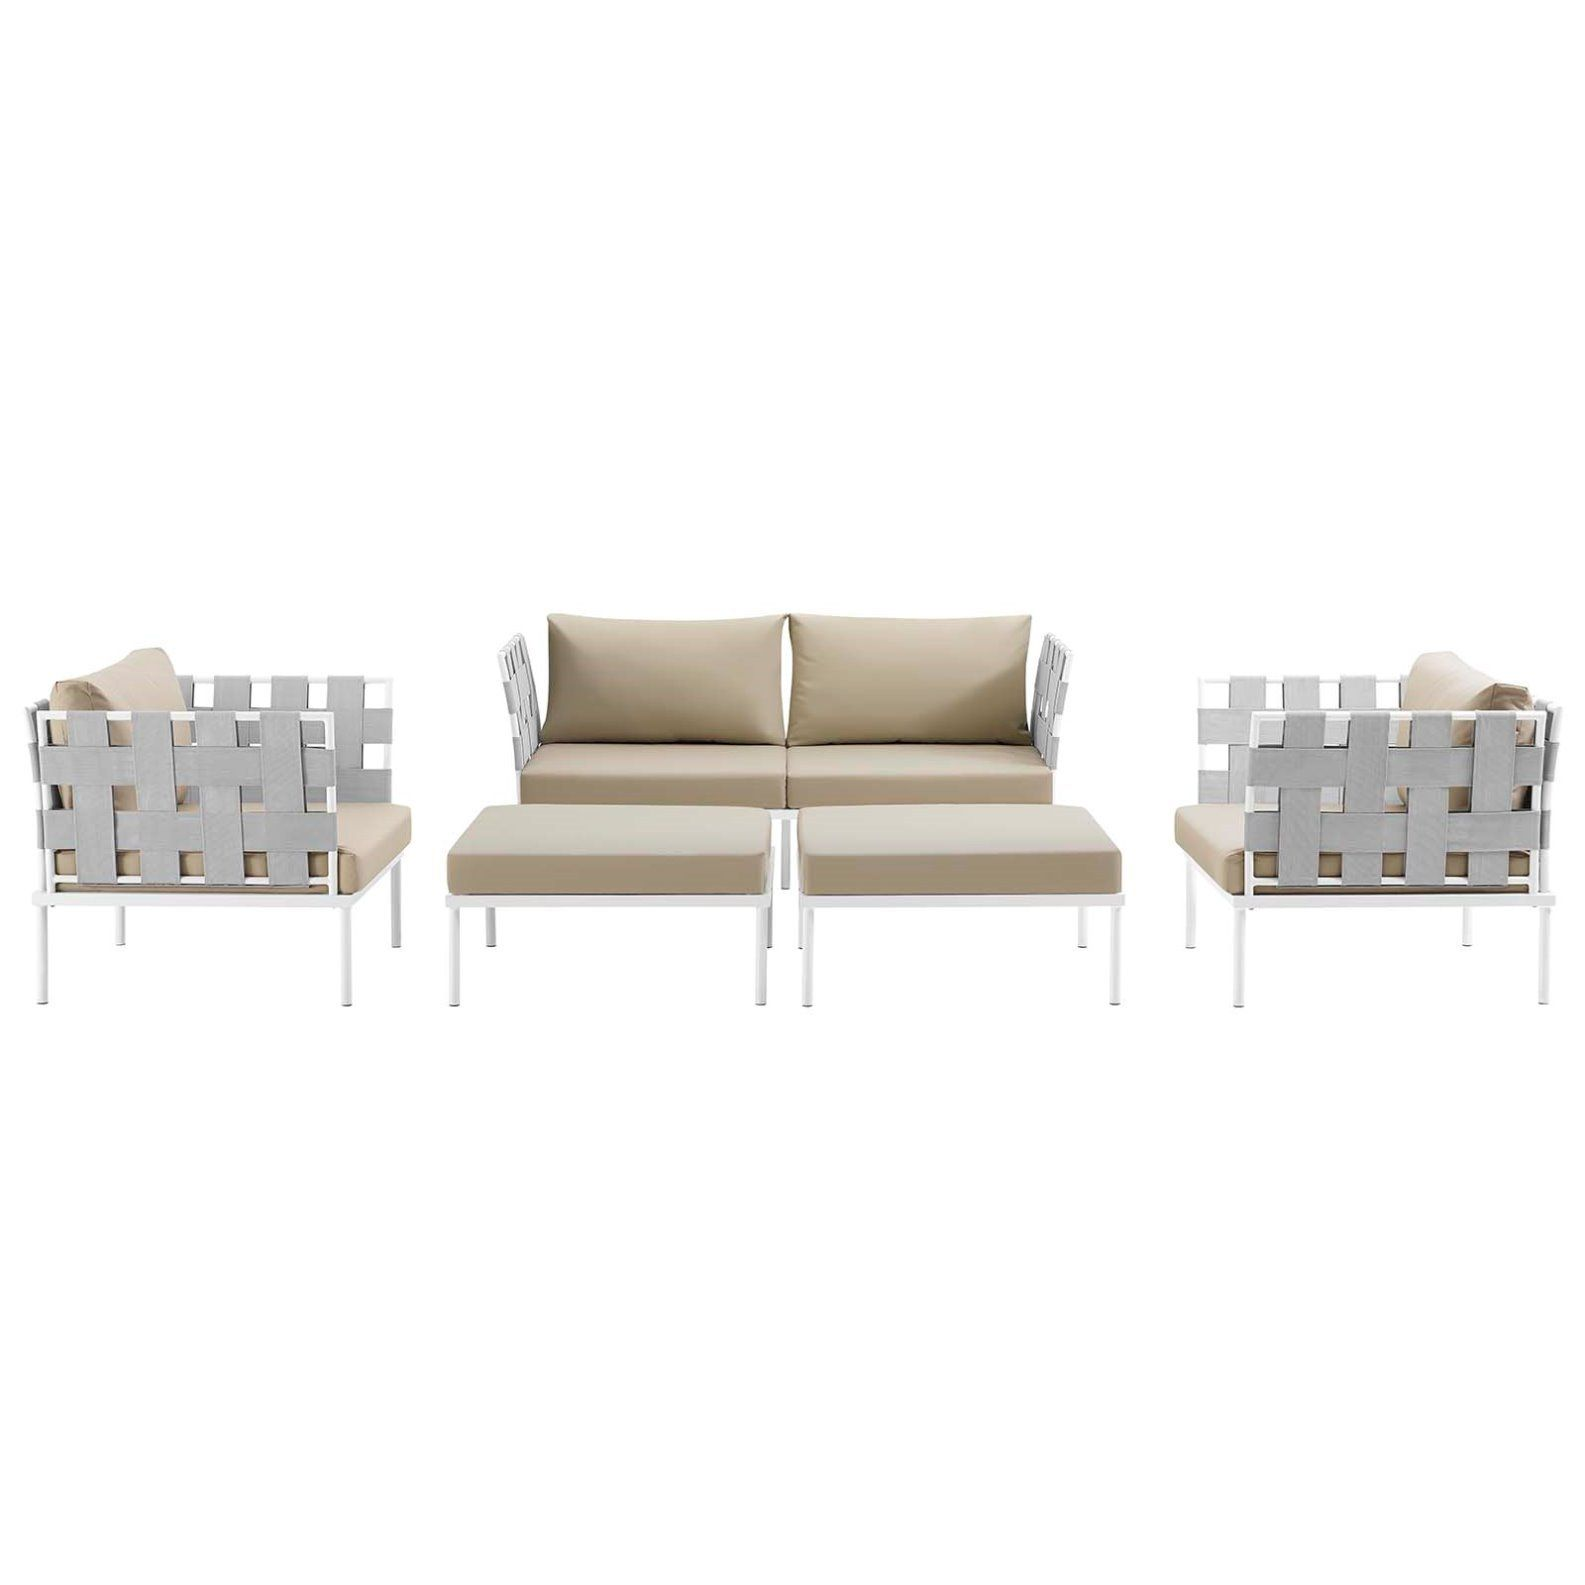 Modern Contemporary Urban Outdoor Patio Balcony Five Pcs Sectional Sofa Set Beige White Rattan With Images Modern Furniture Sets Patio Furniture Dining Set Seating Groups